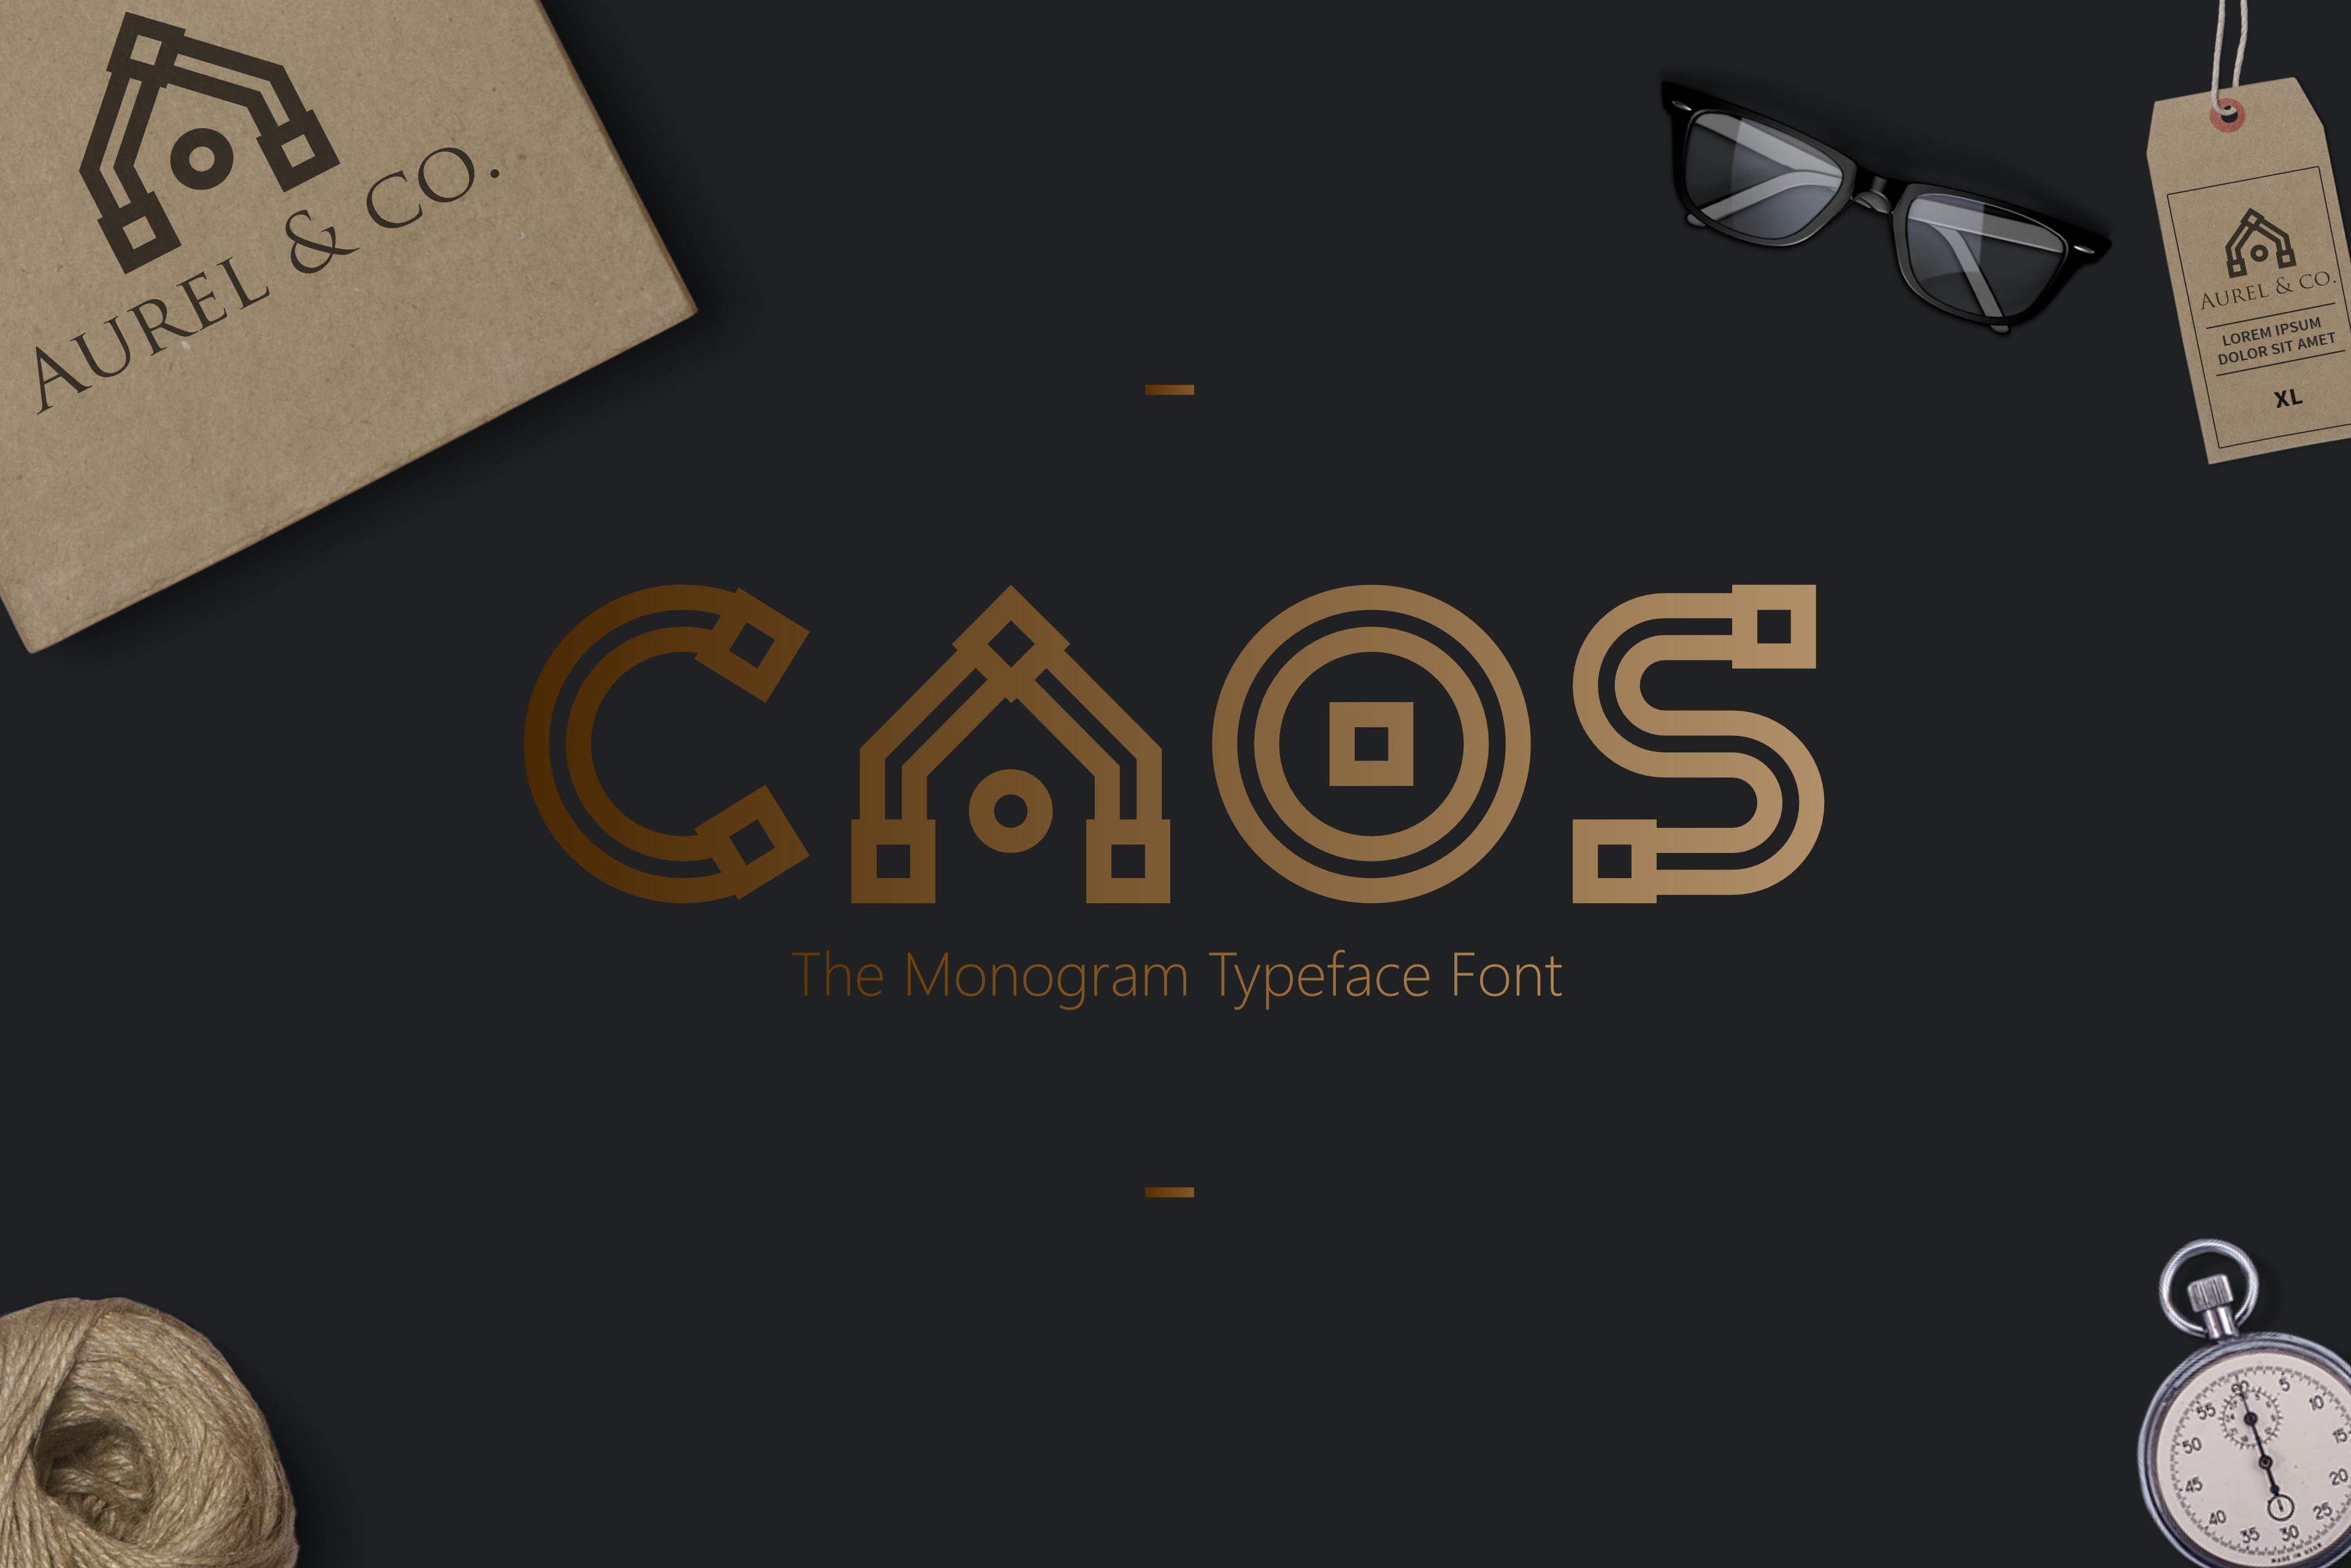 Caos Font By Sameeh Media Image 1